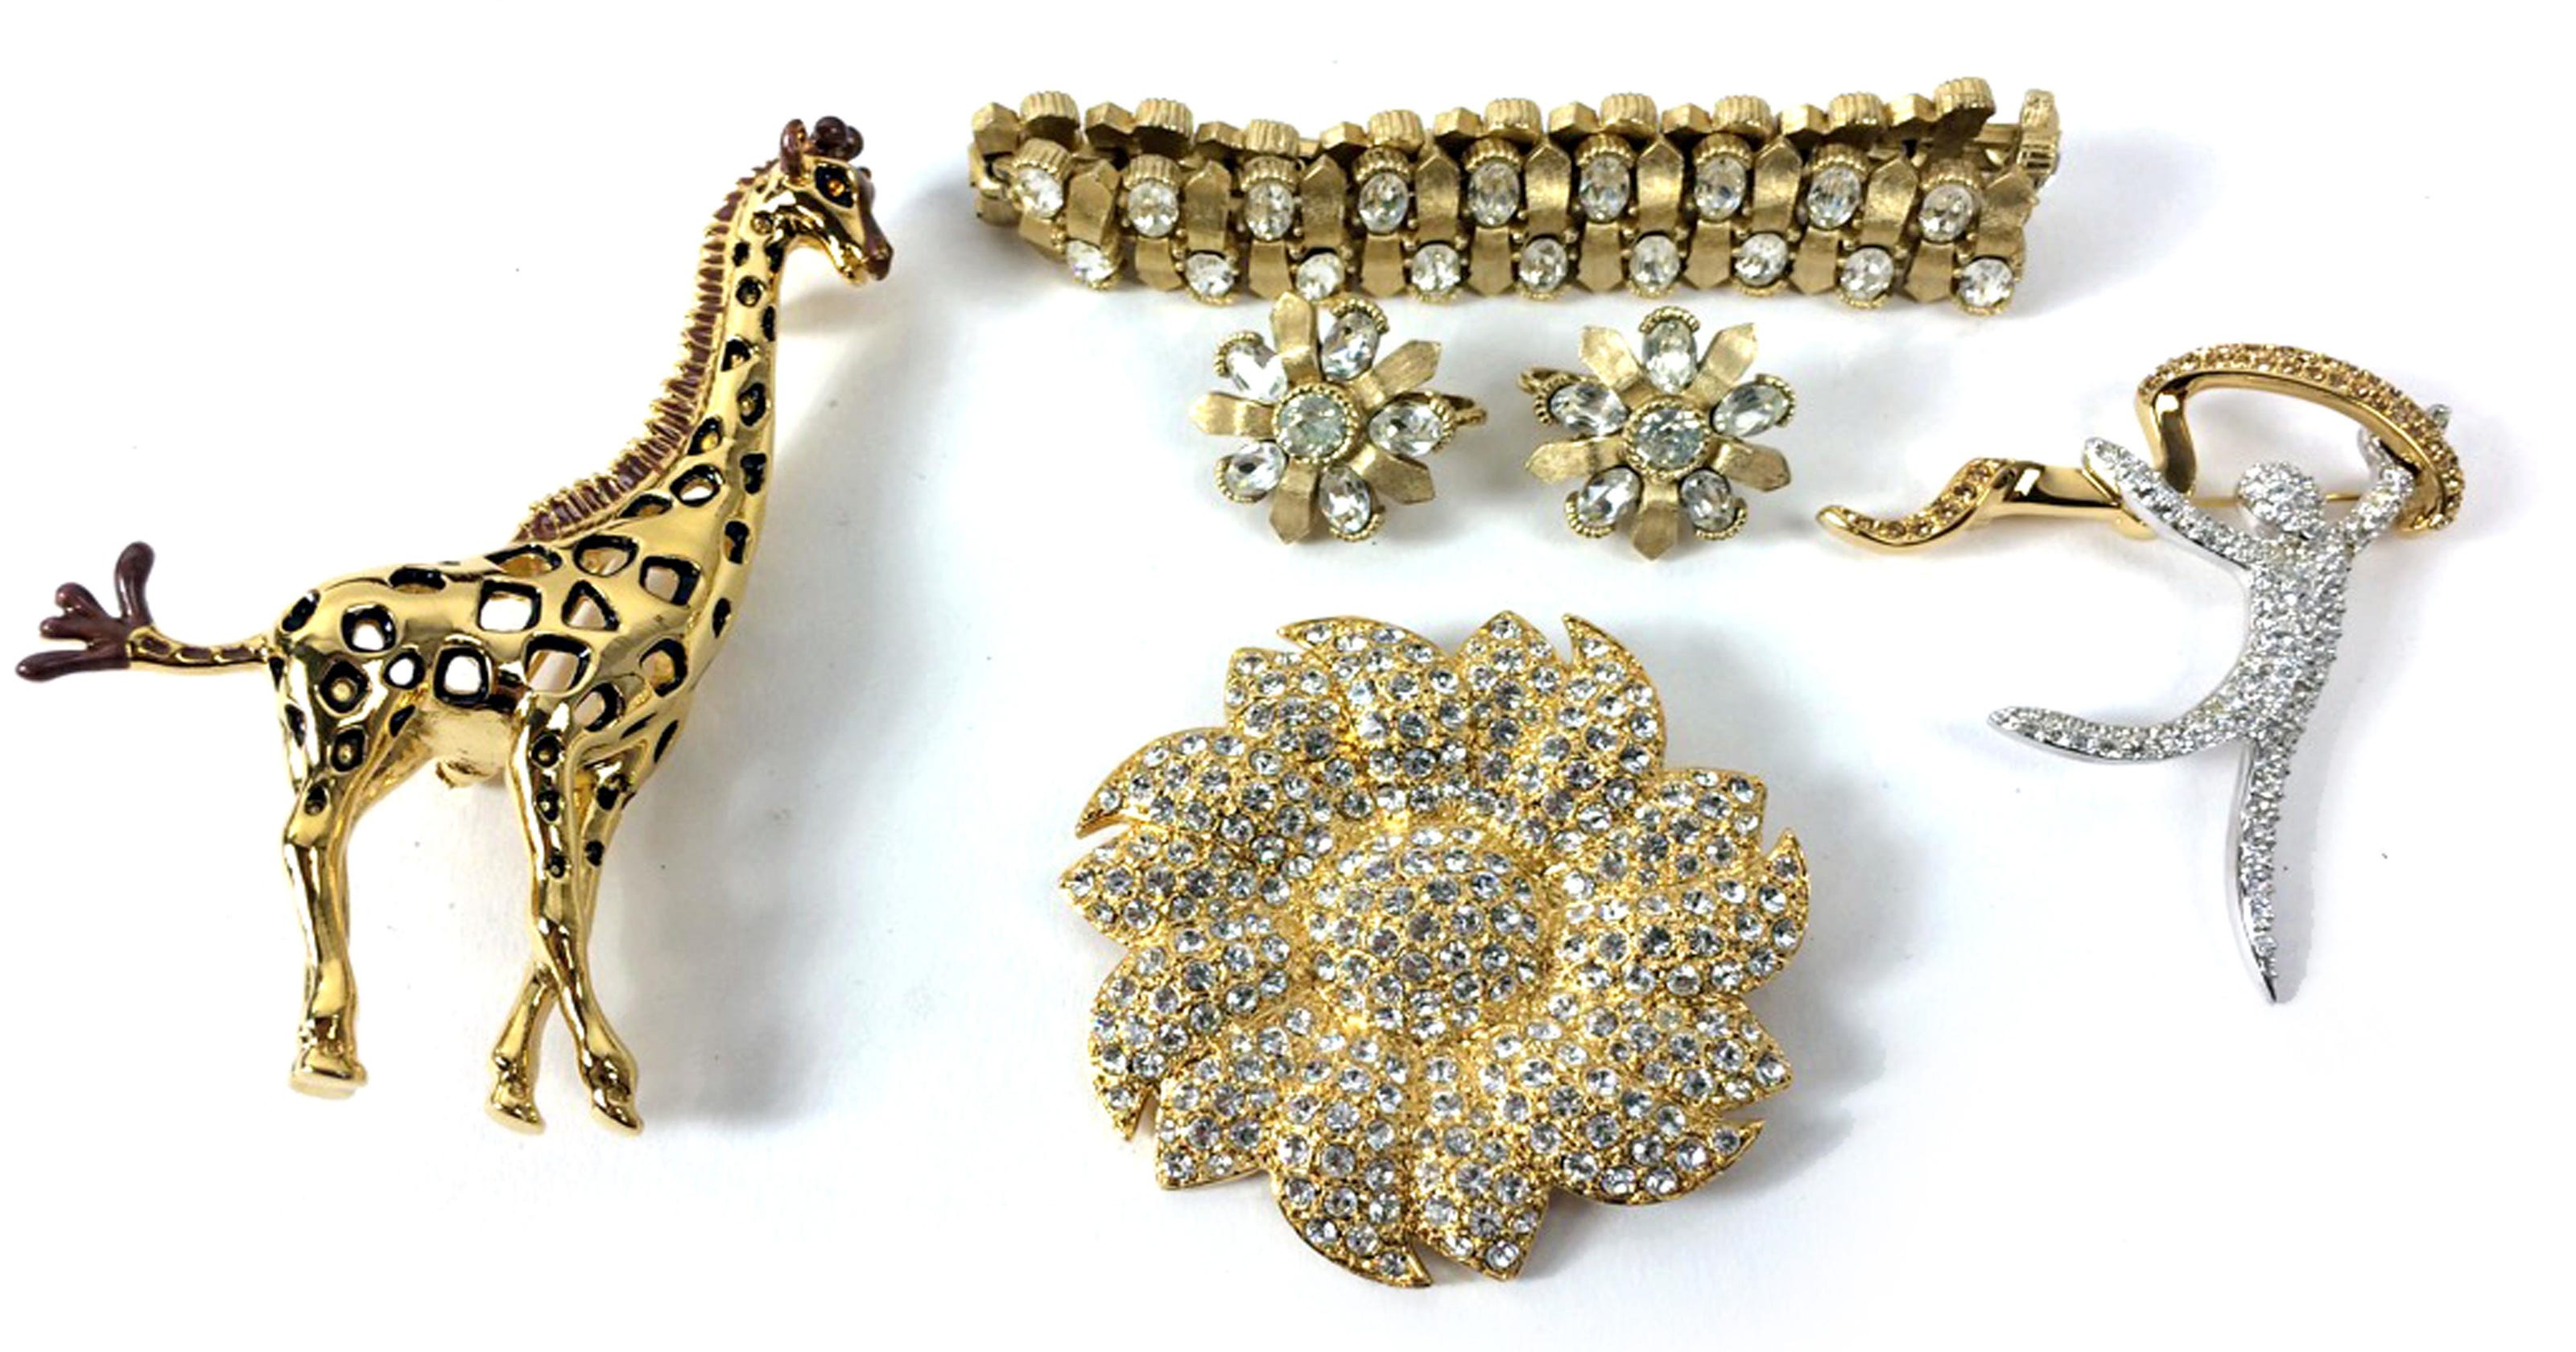 3 tips to determine value of costume jewelry 6a6b64a1a557c